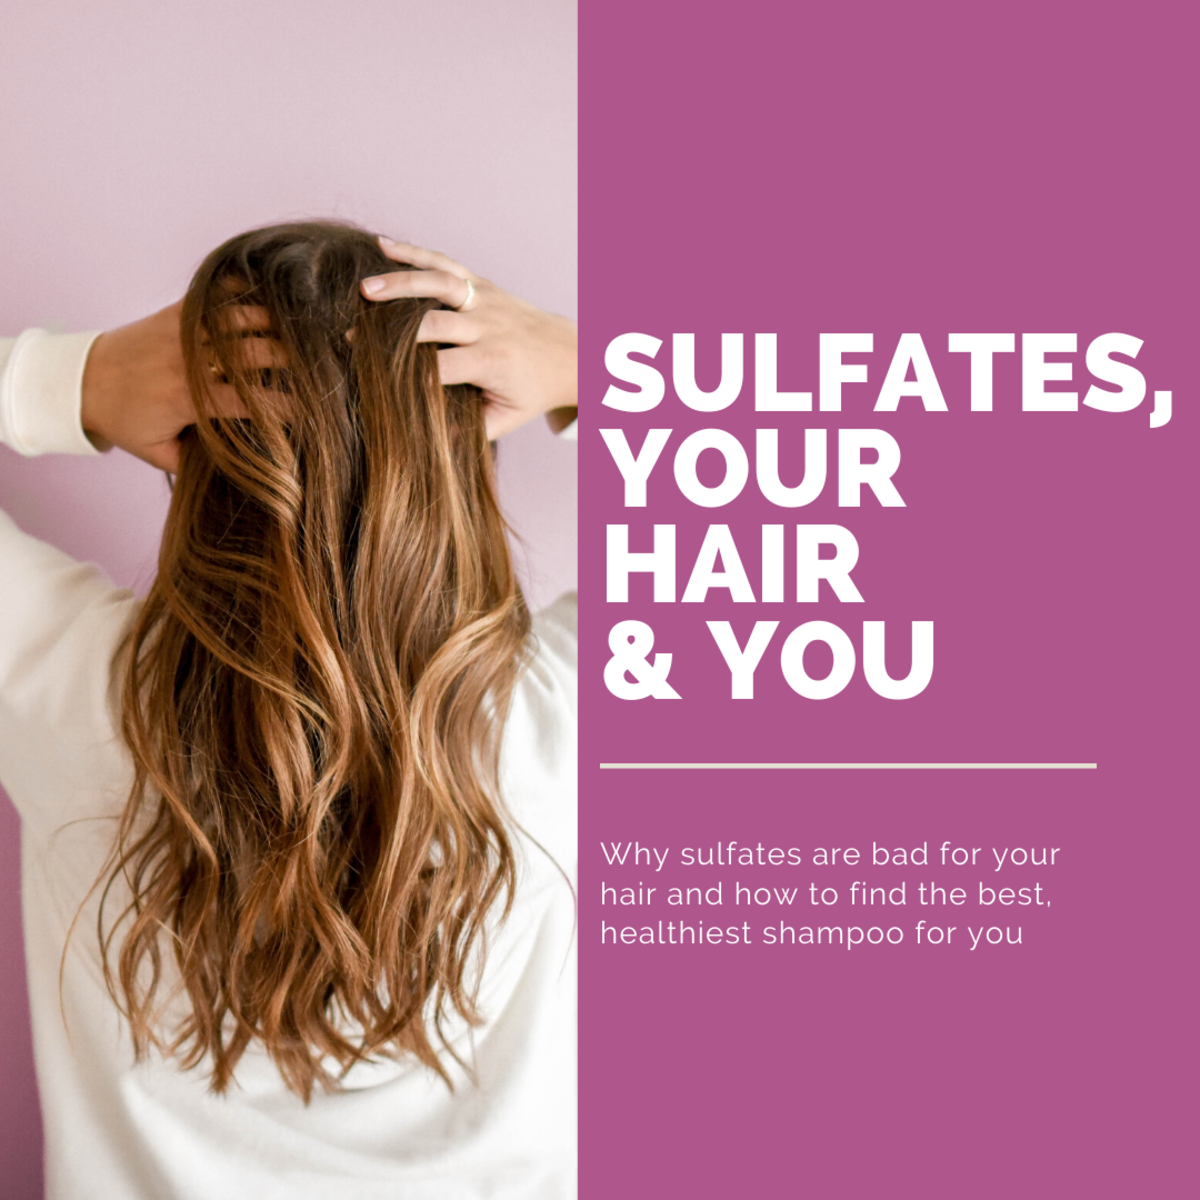 Is Sulfate Bad for Your Hair? (Effects of Sulfates in Shampoo)